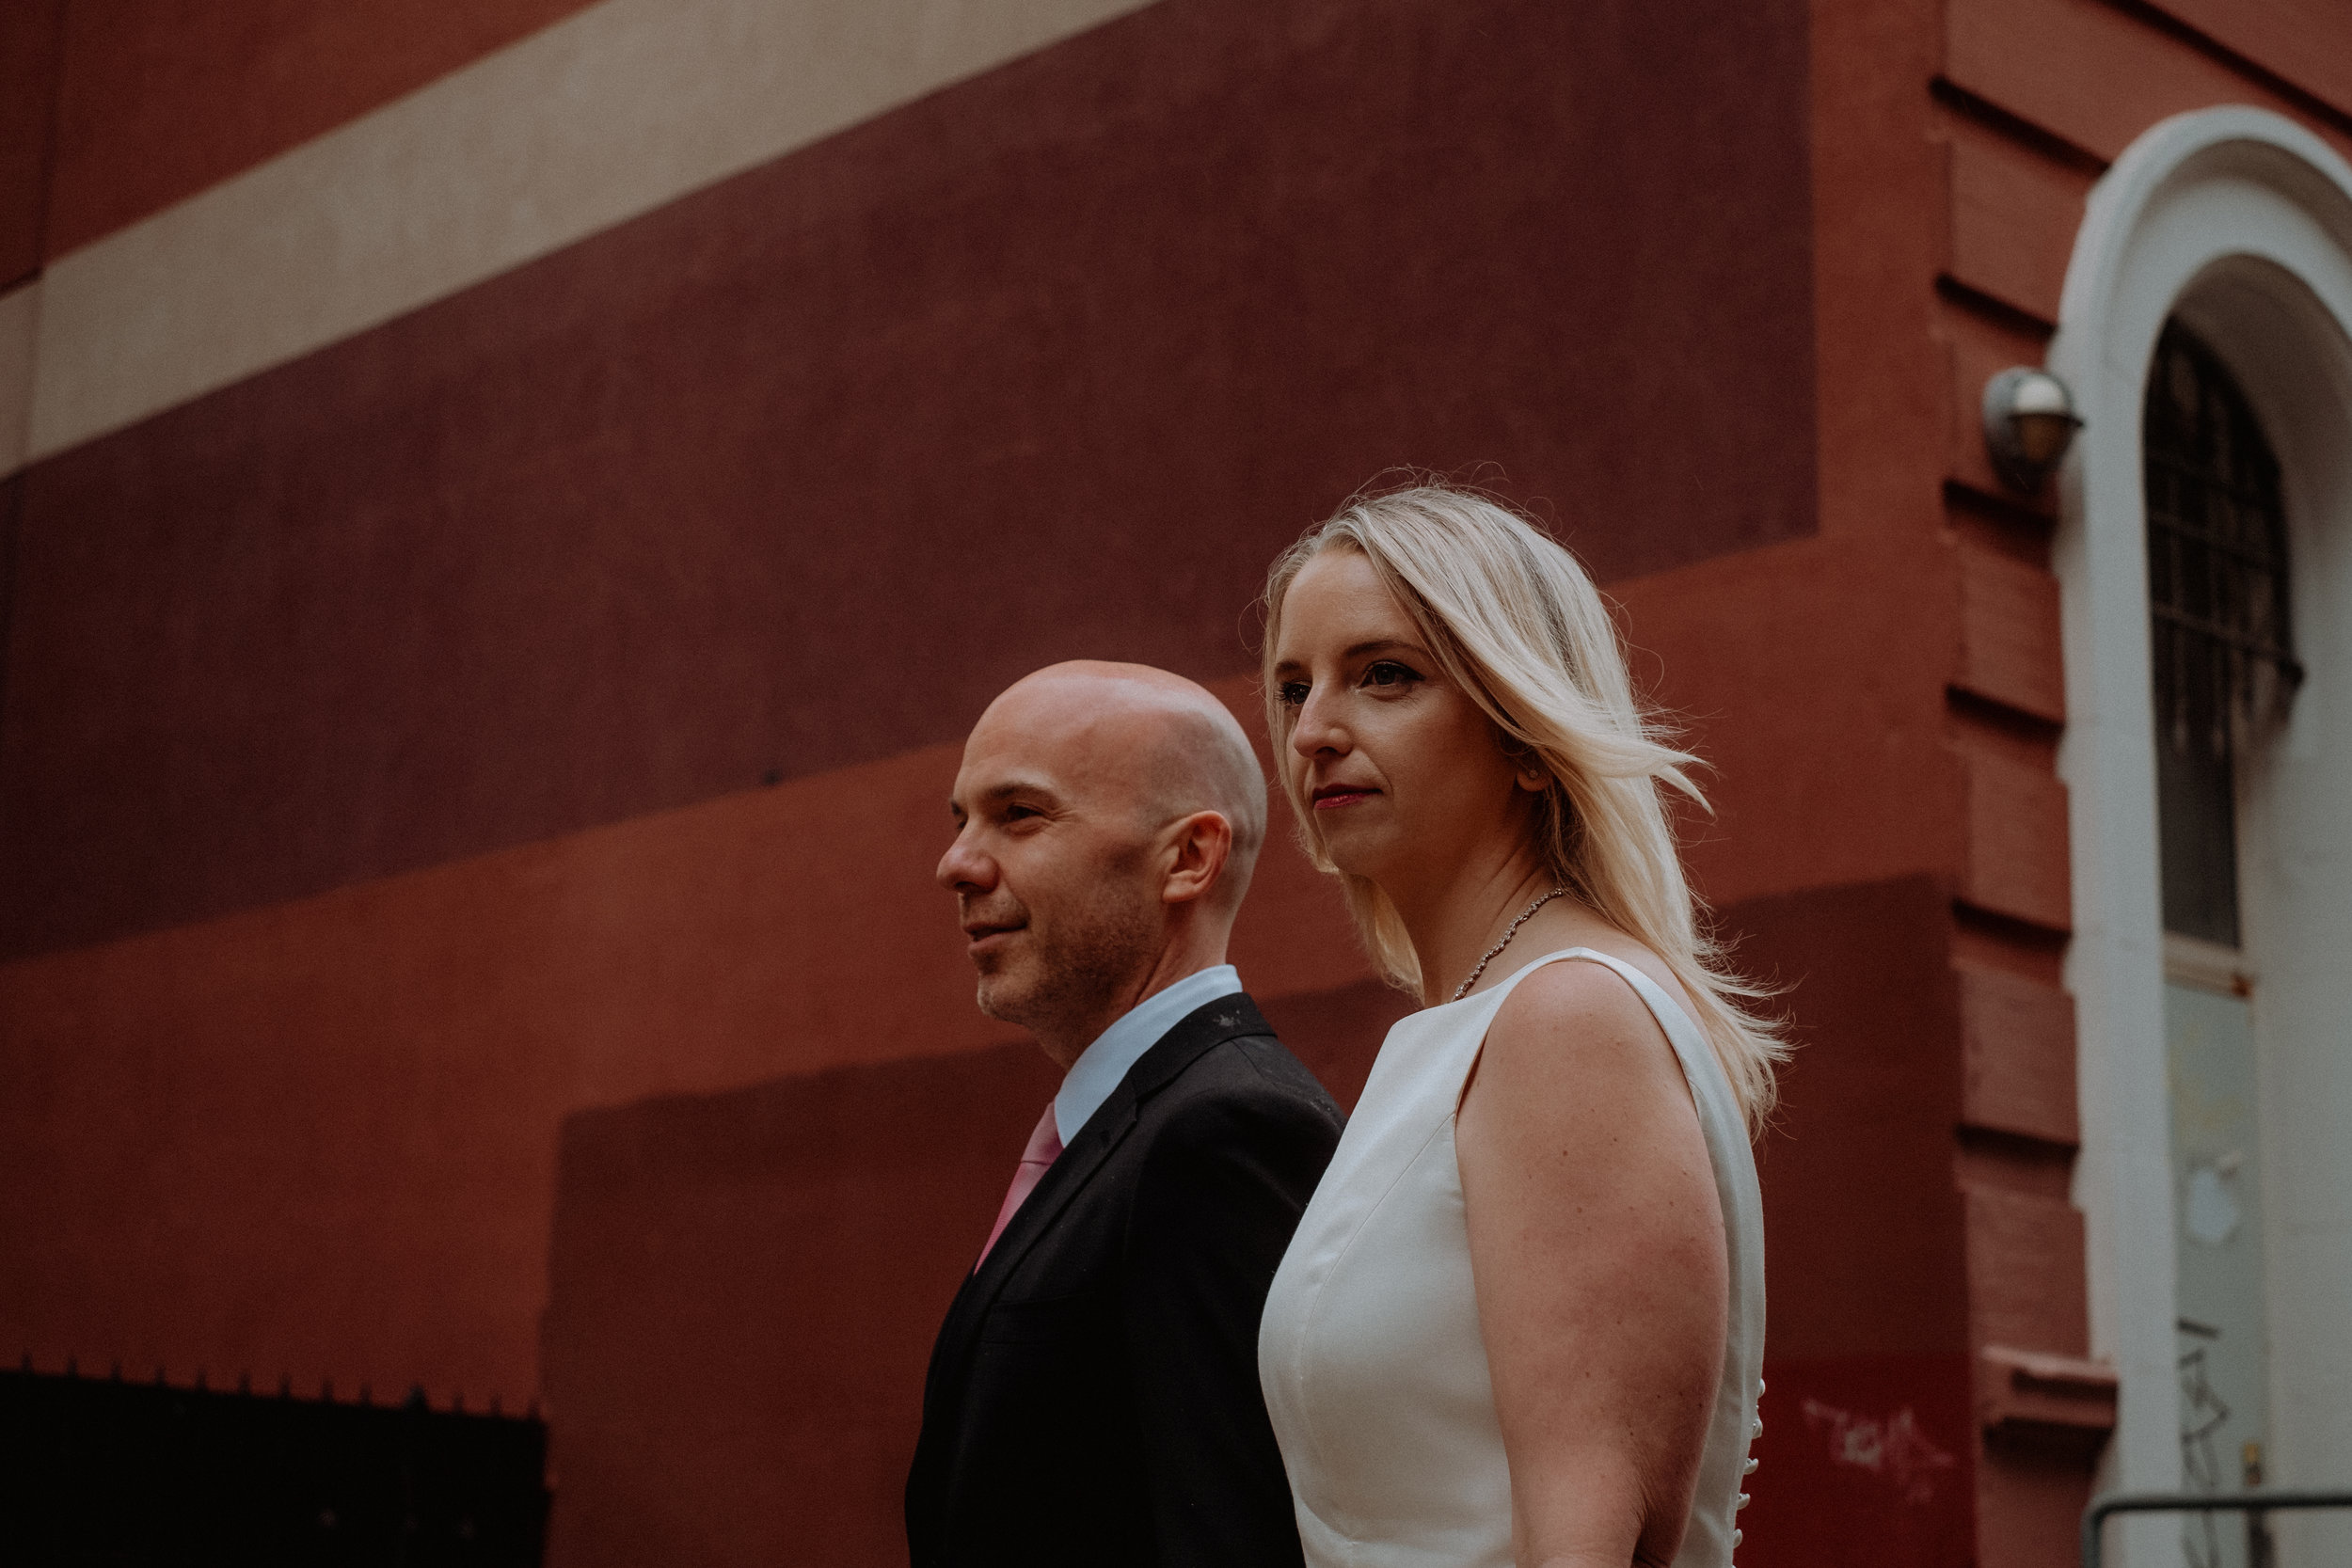 Brooklyn_City_Hall_Elopement_Photographer_Chellise_Michael_Photography270.JPG